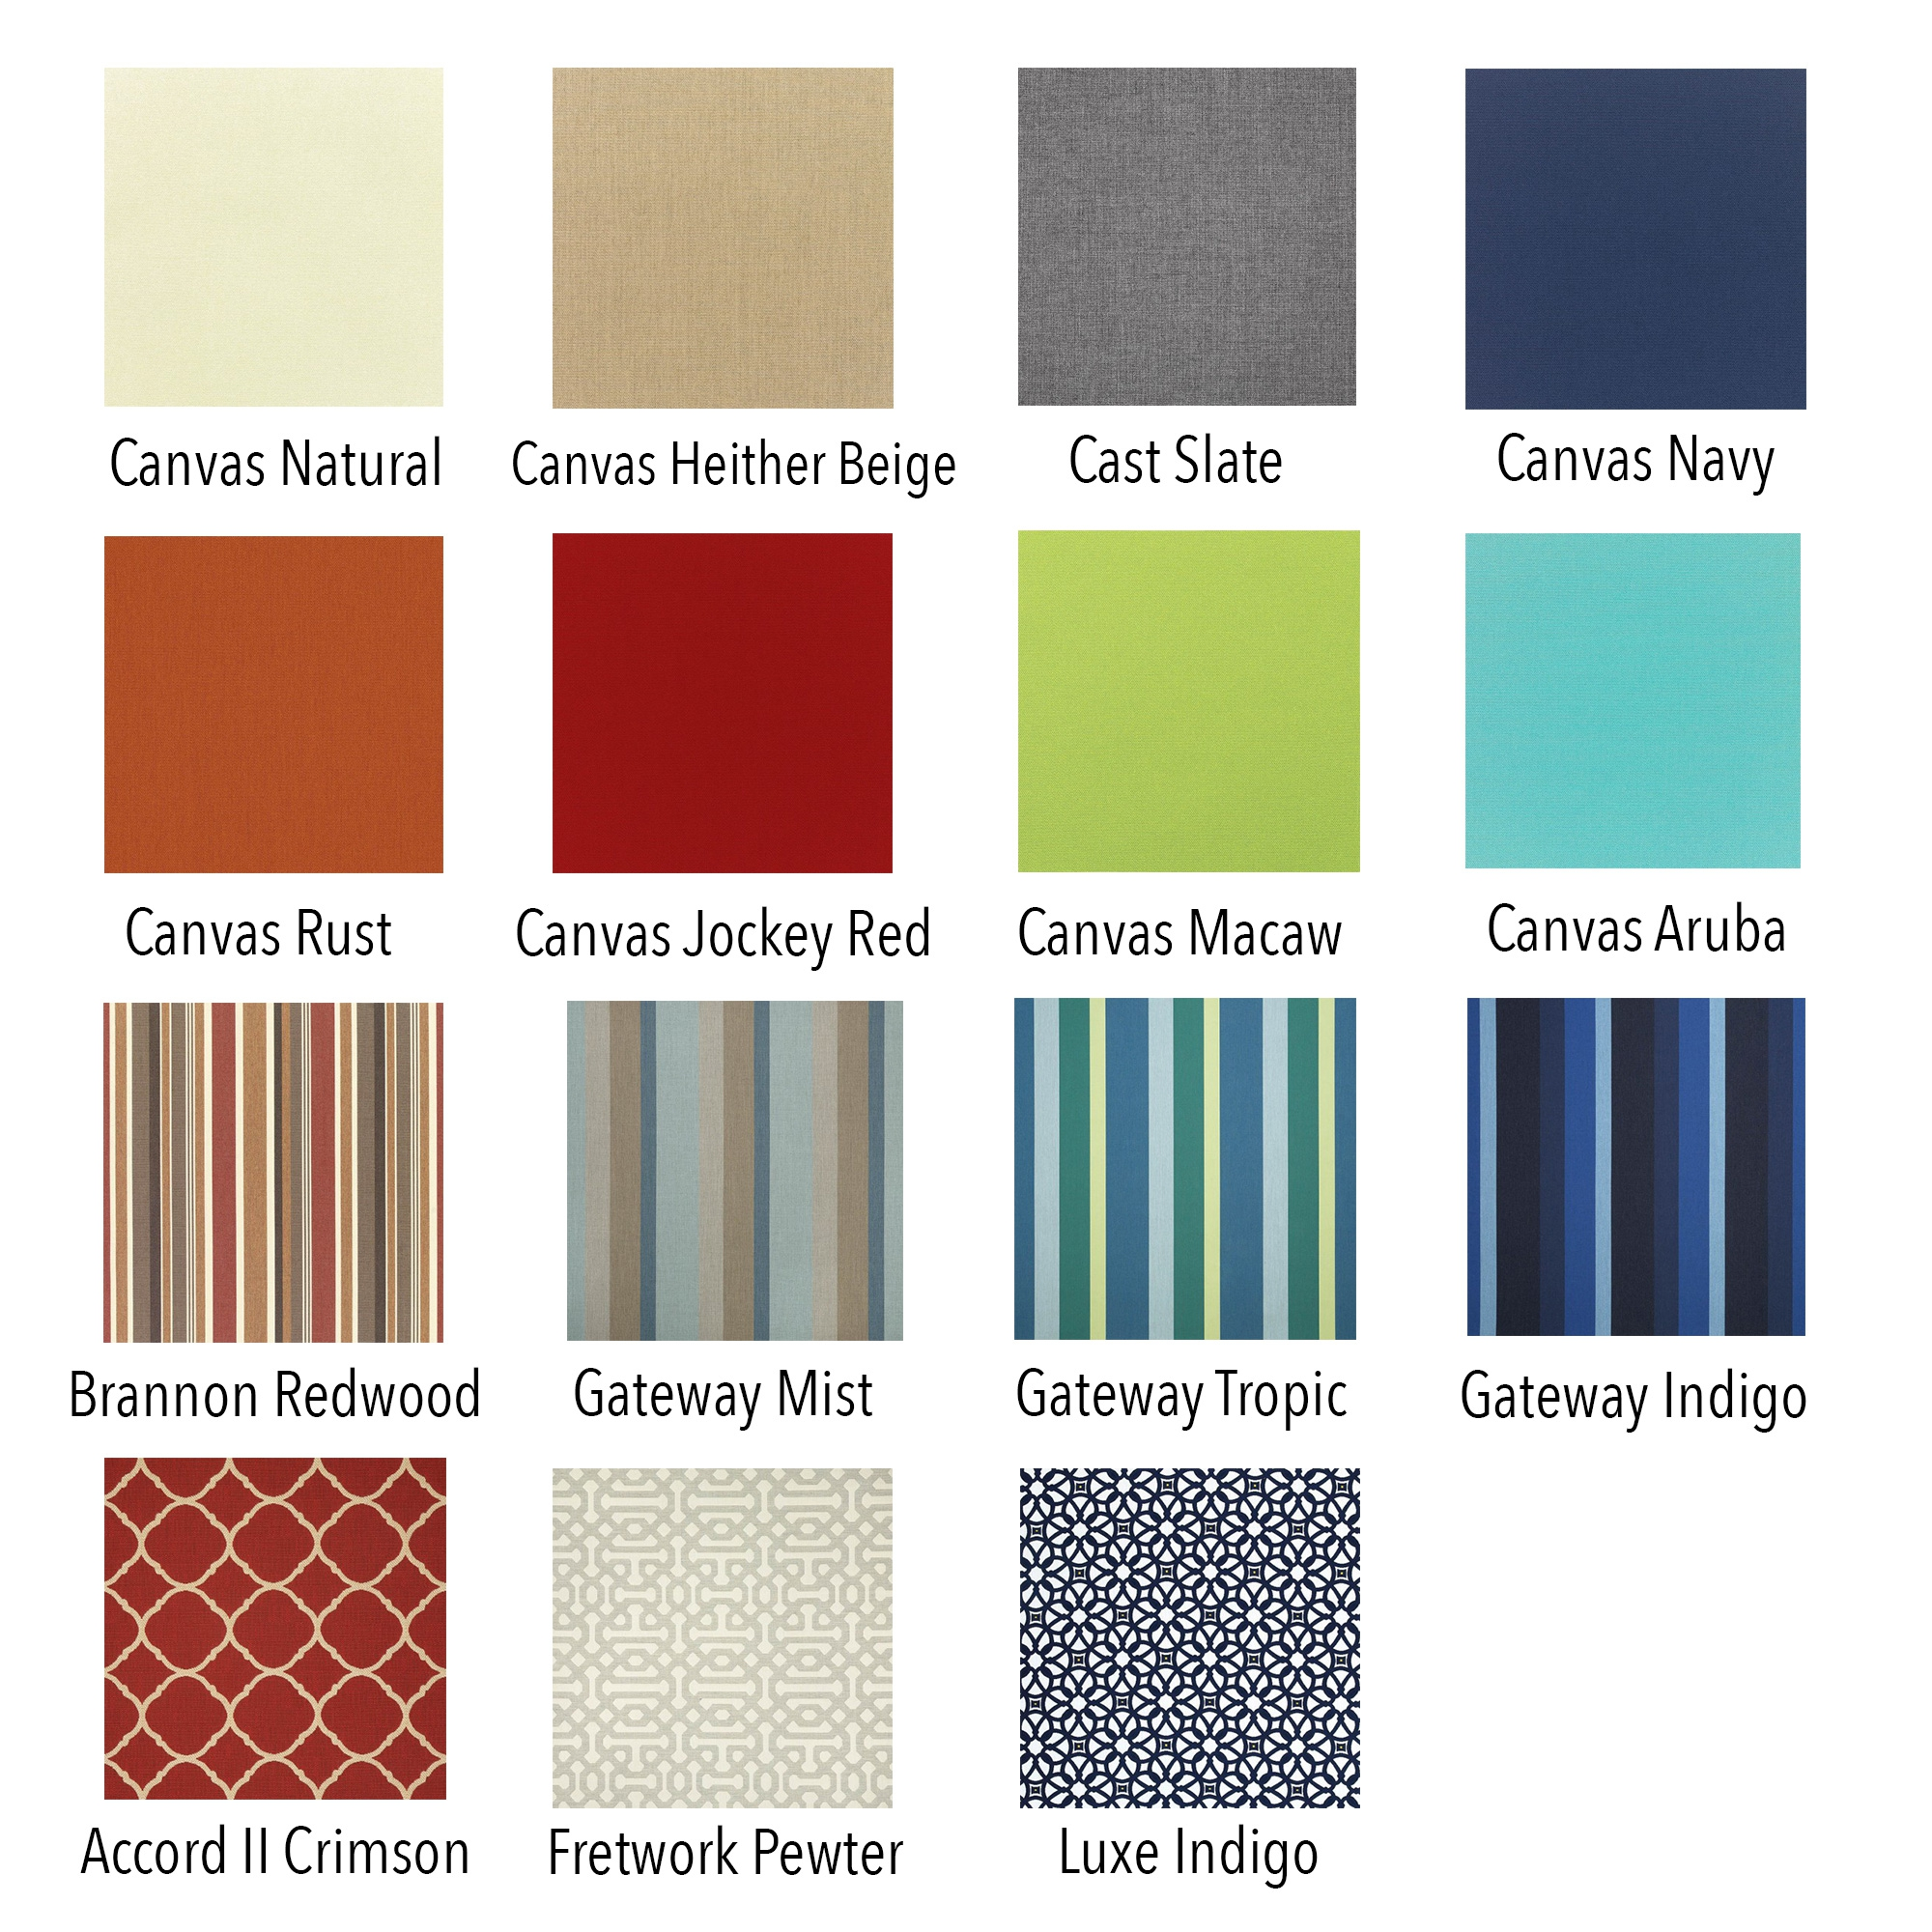 Sunbrella Seat Cushions | Outdoor Patio Cushions Sunbrella | Outdoor Cushions Sunbrella Fabric